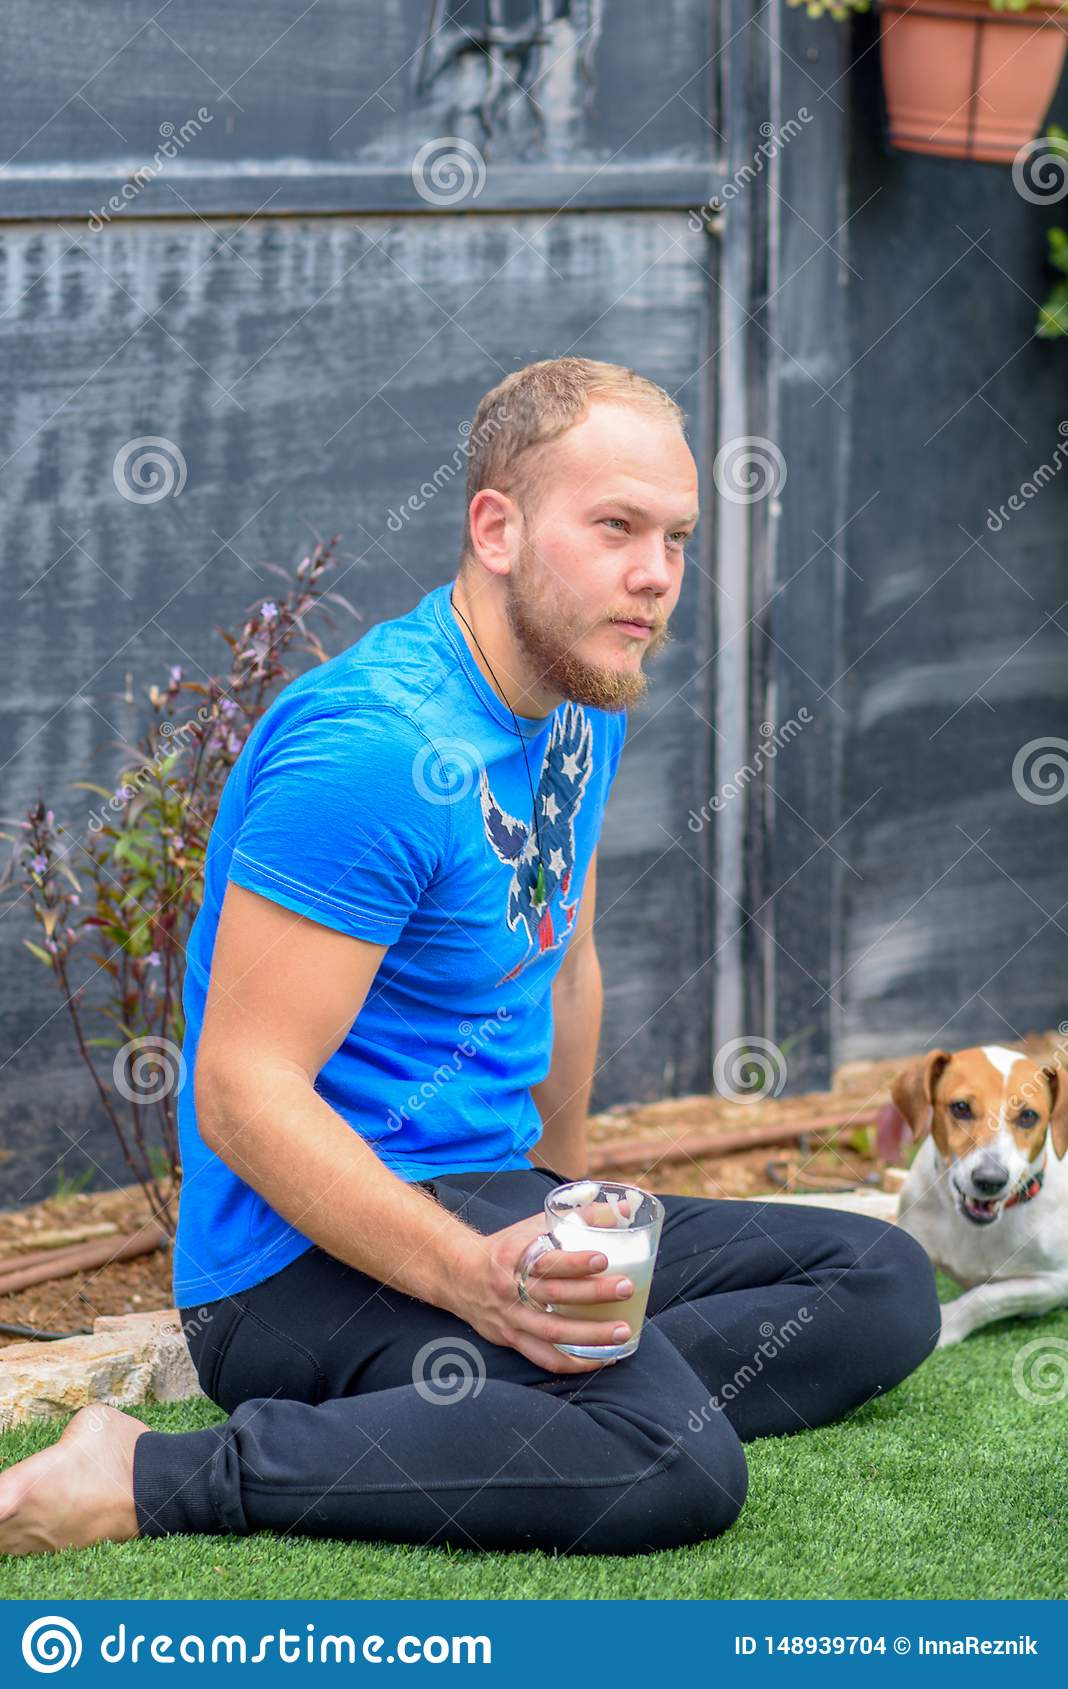 Portrait Of A Young Bearded Man and Dog Outdoor.